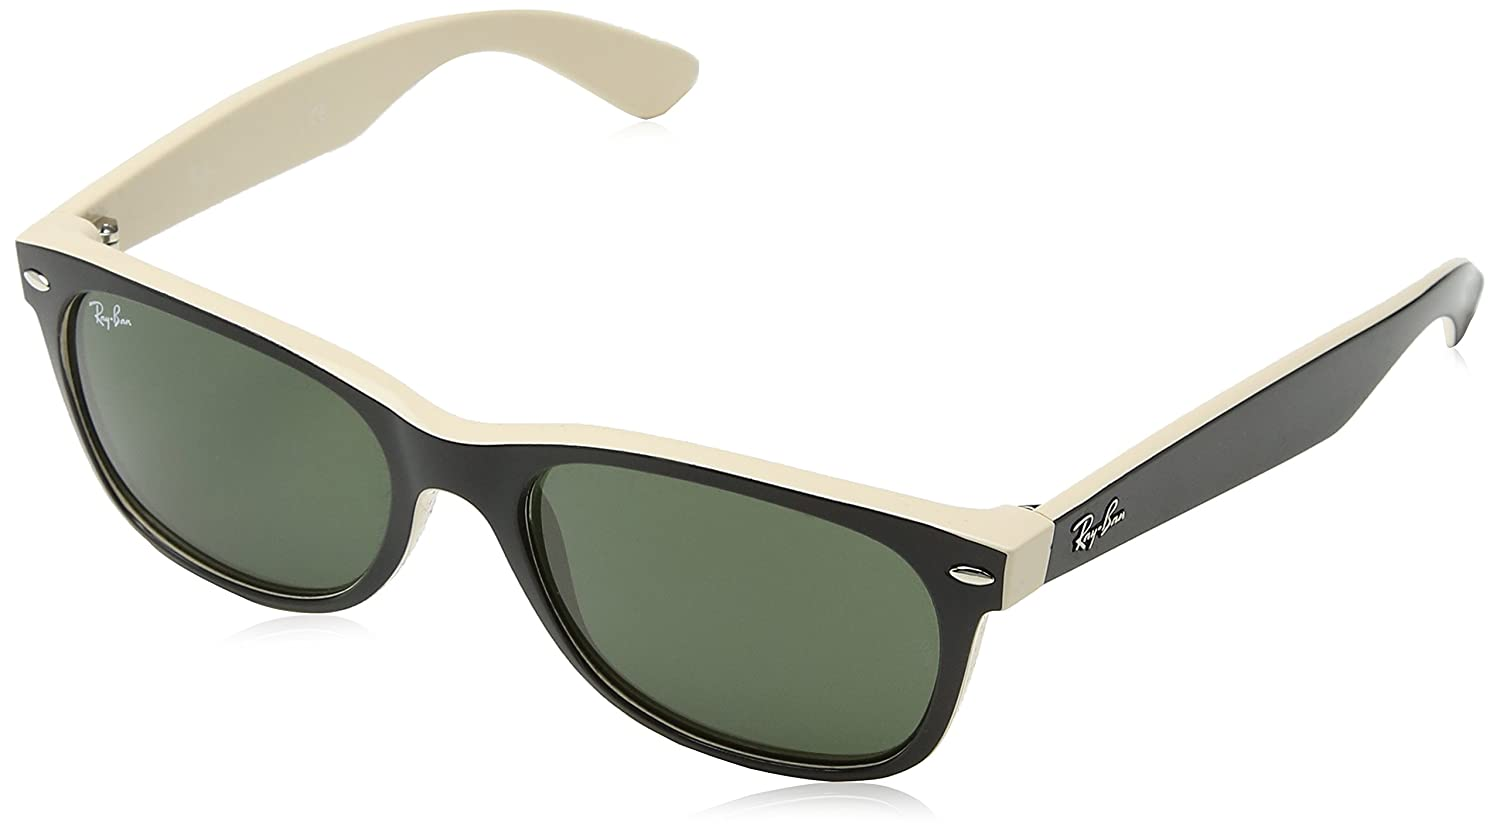 5352c38c35 Amazon.com: Ray-Ban New Wayfarer RB2132 Sunglasses-875 Black On  Beige/Crystal Green-55mm: Ray-Ban: Clothing